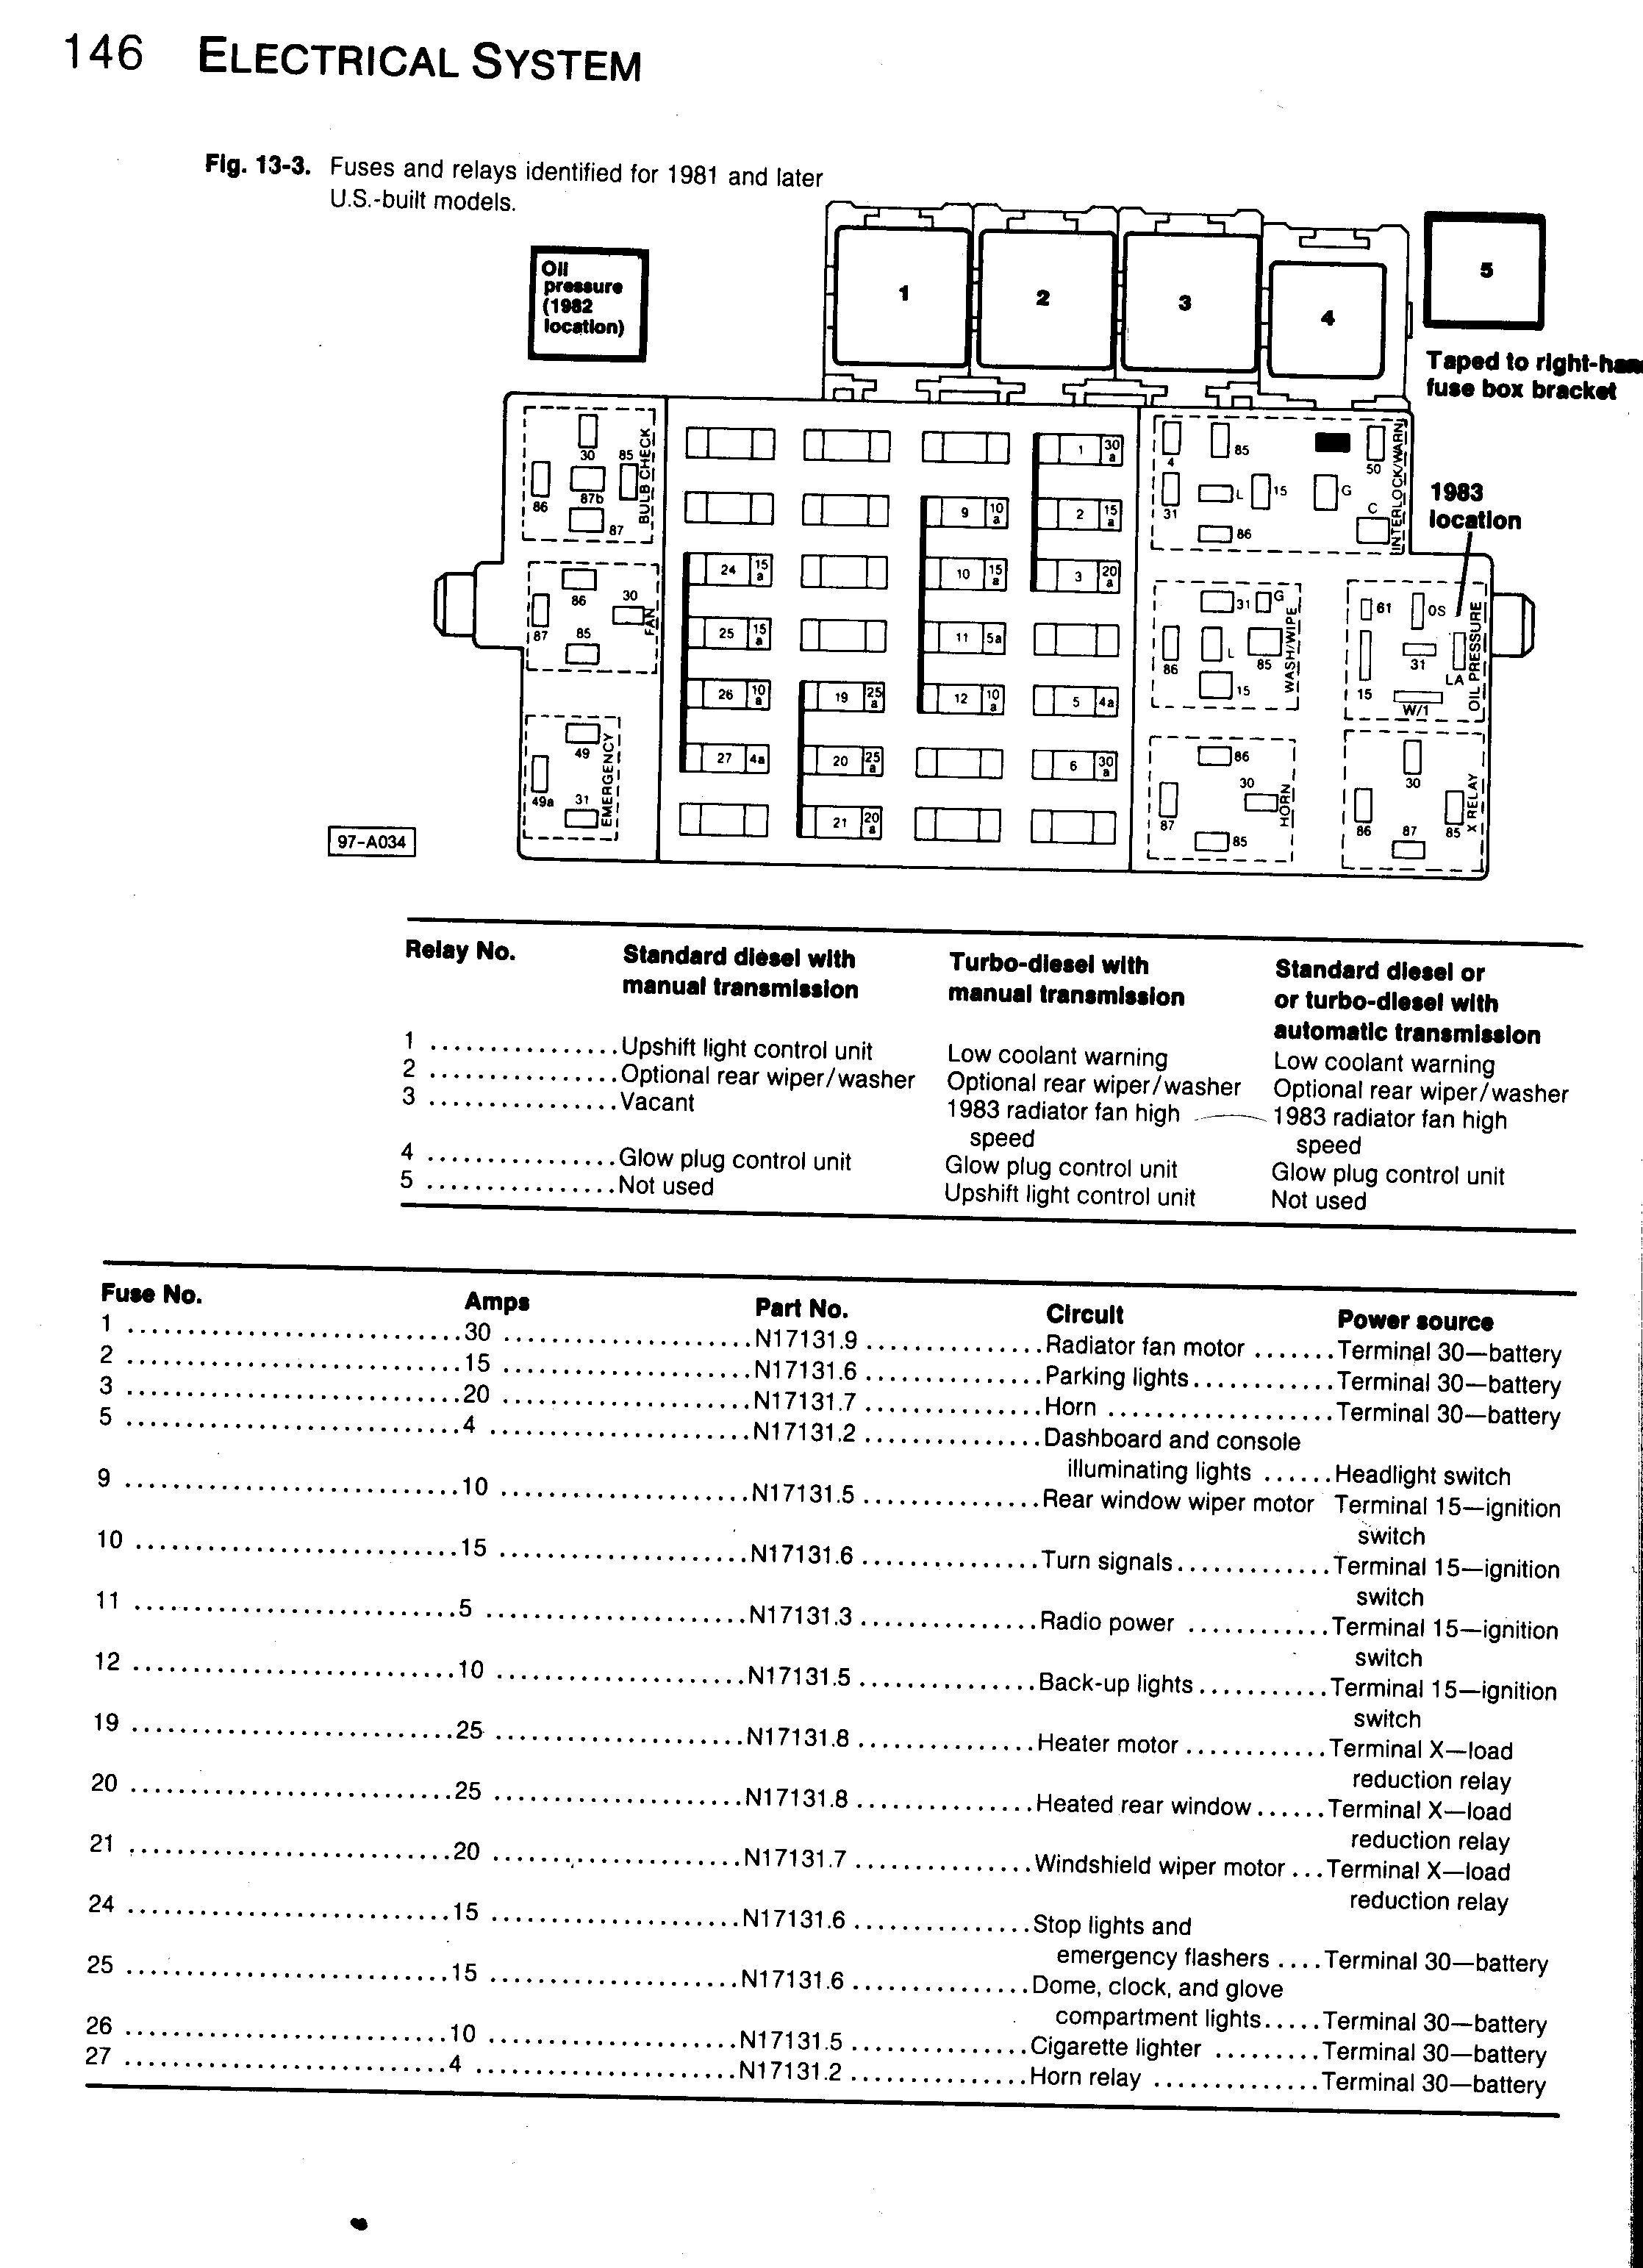 [SCHEMATICS_44OR]  4C1BC 2009 Volkswagen Jetta Fuse Box | Wiring Library | 2009 Vw Jetta Fuse Box Diagram |  | Wiring Library